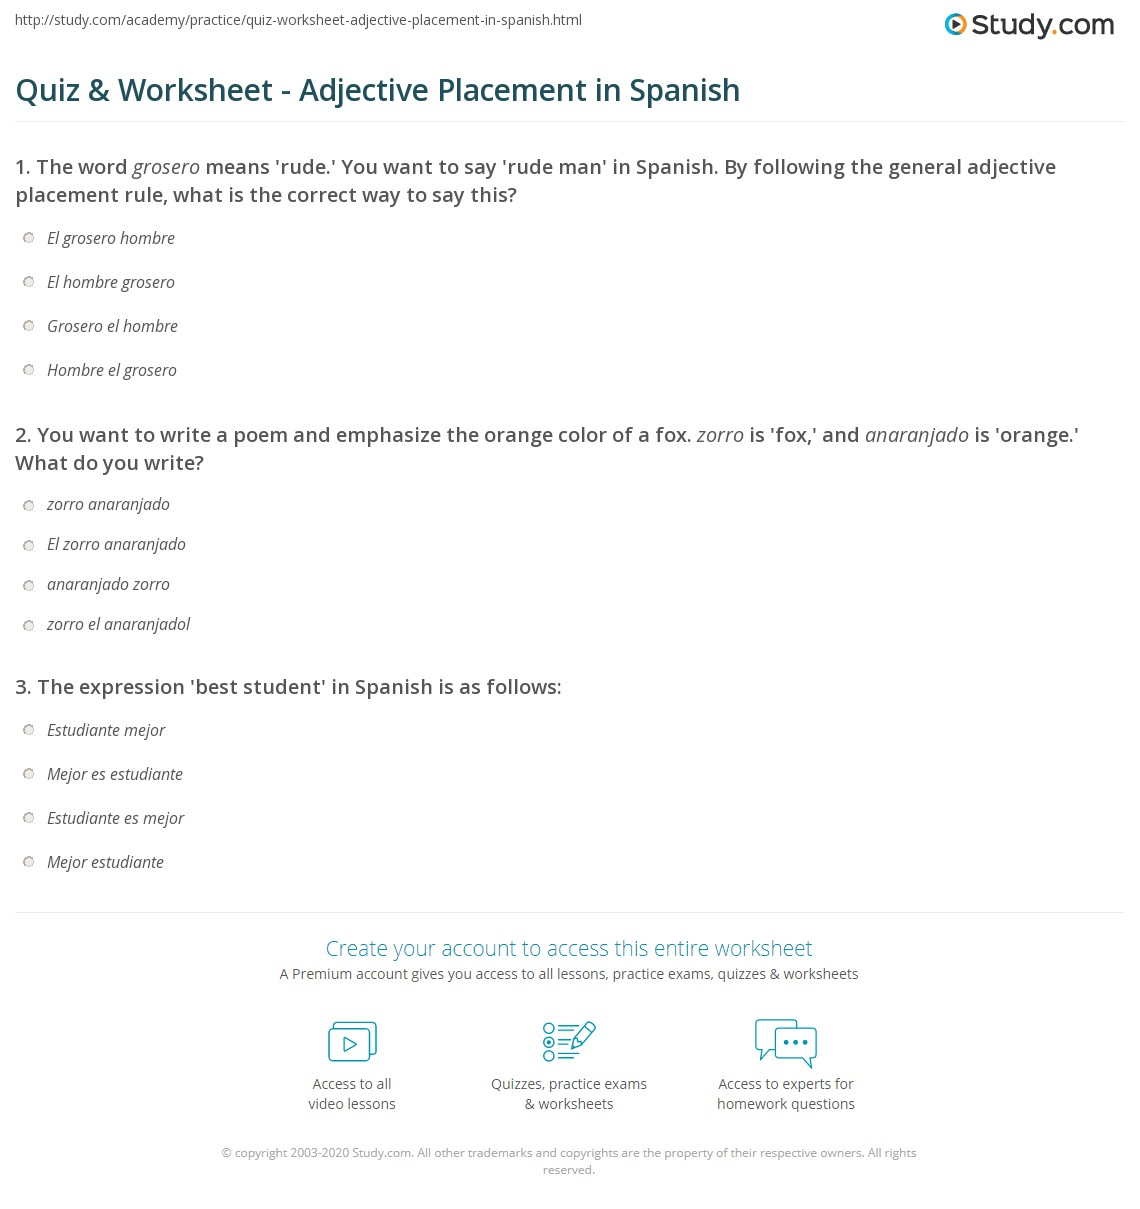 Quiz & Worksheet - Adjective Placement in Spanish | Study.com